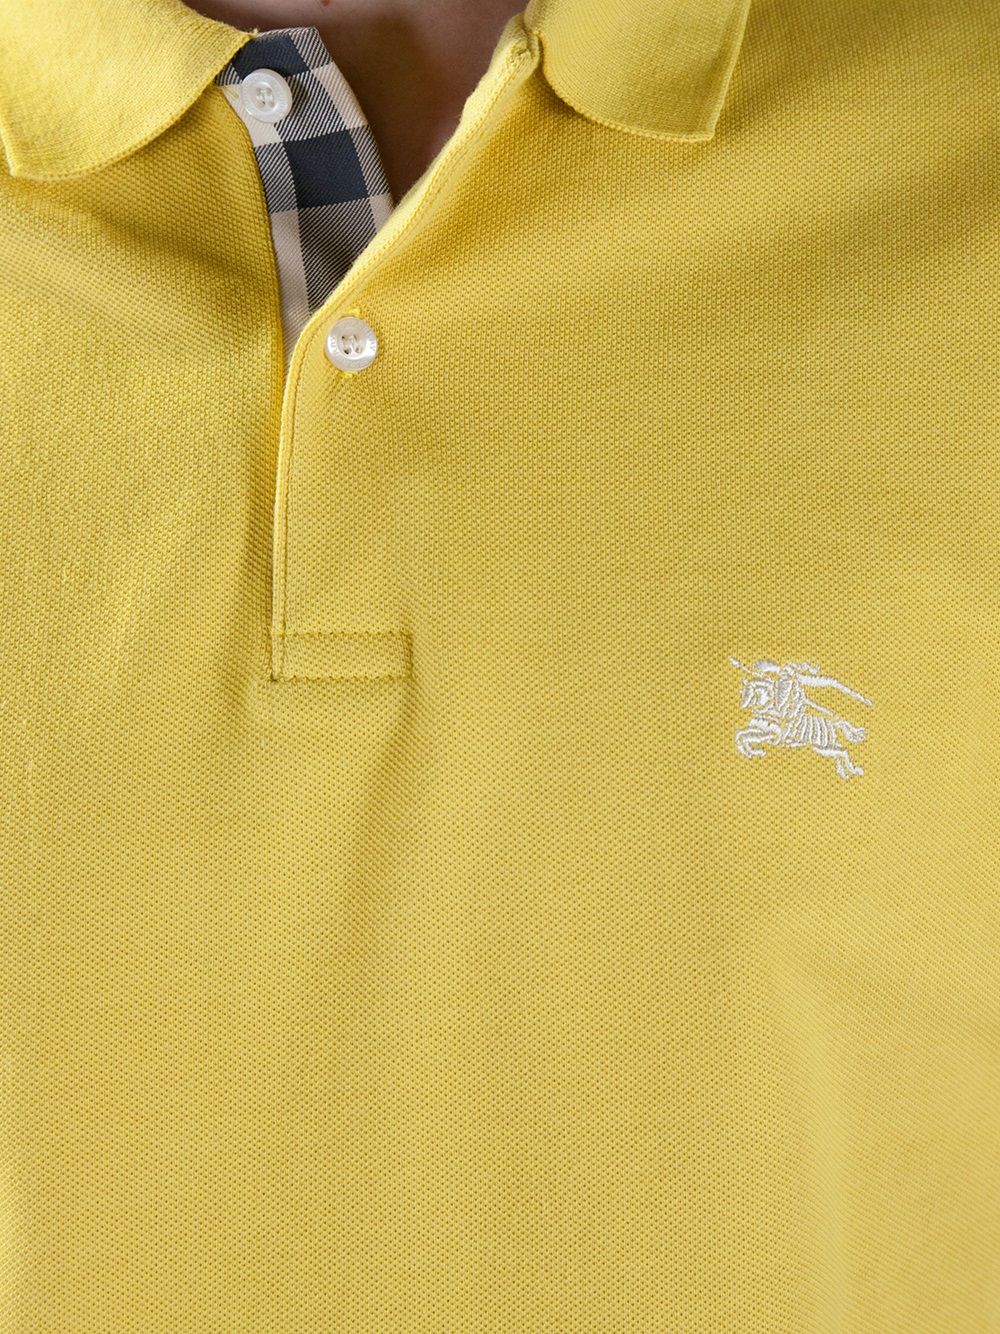 Burberry Brit Classic Polo Shirt in Yellow for Men - Lyst 5d67d9b864